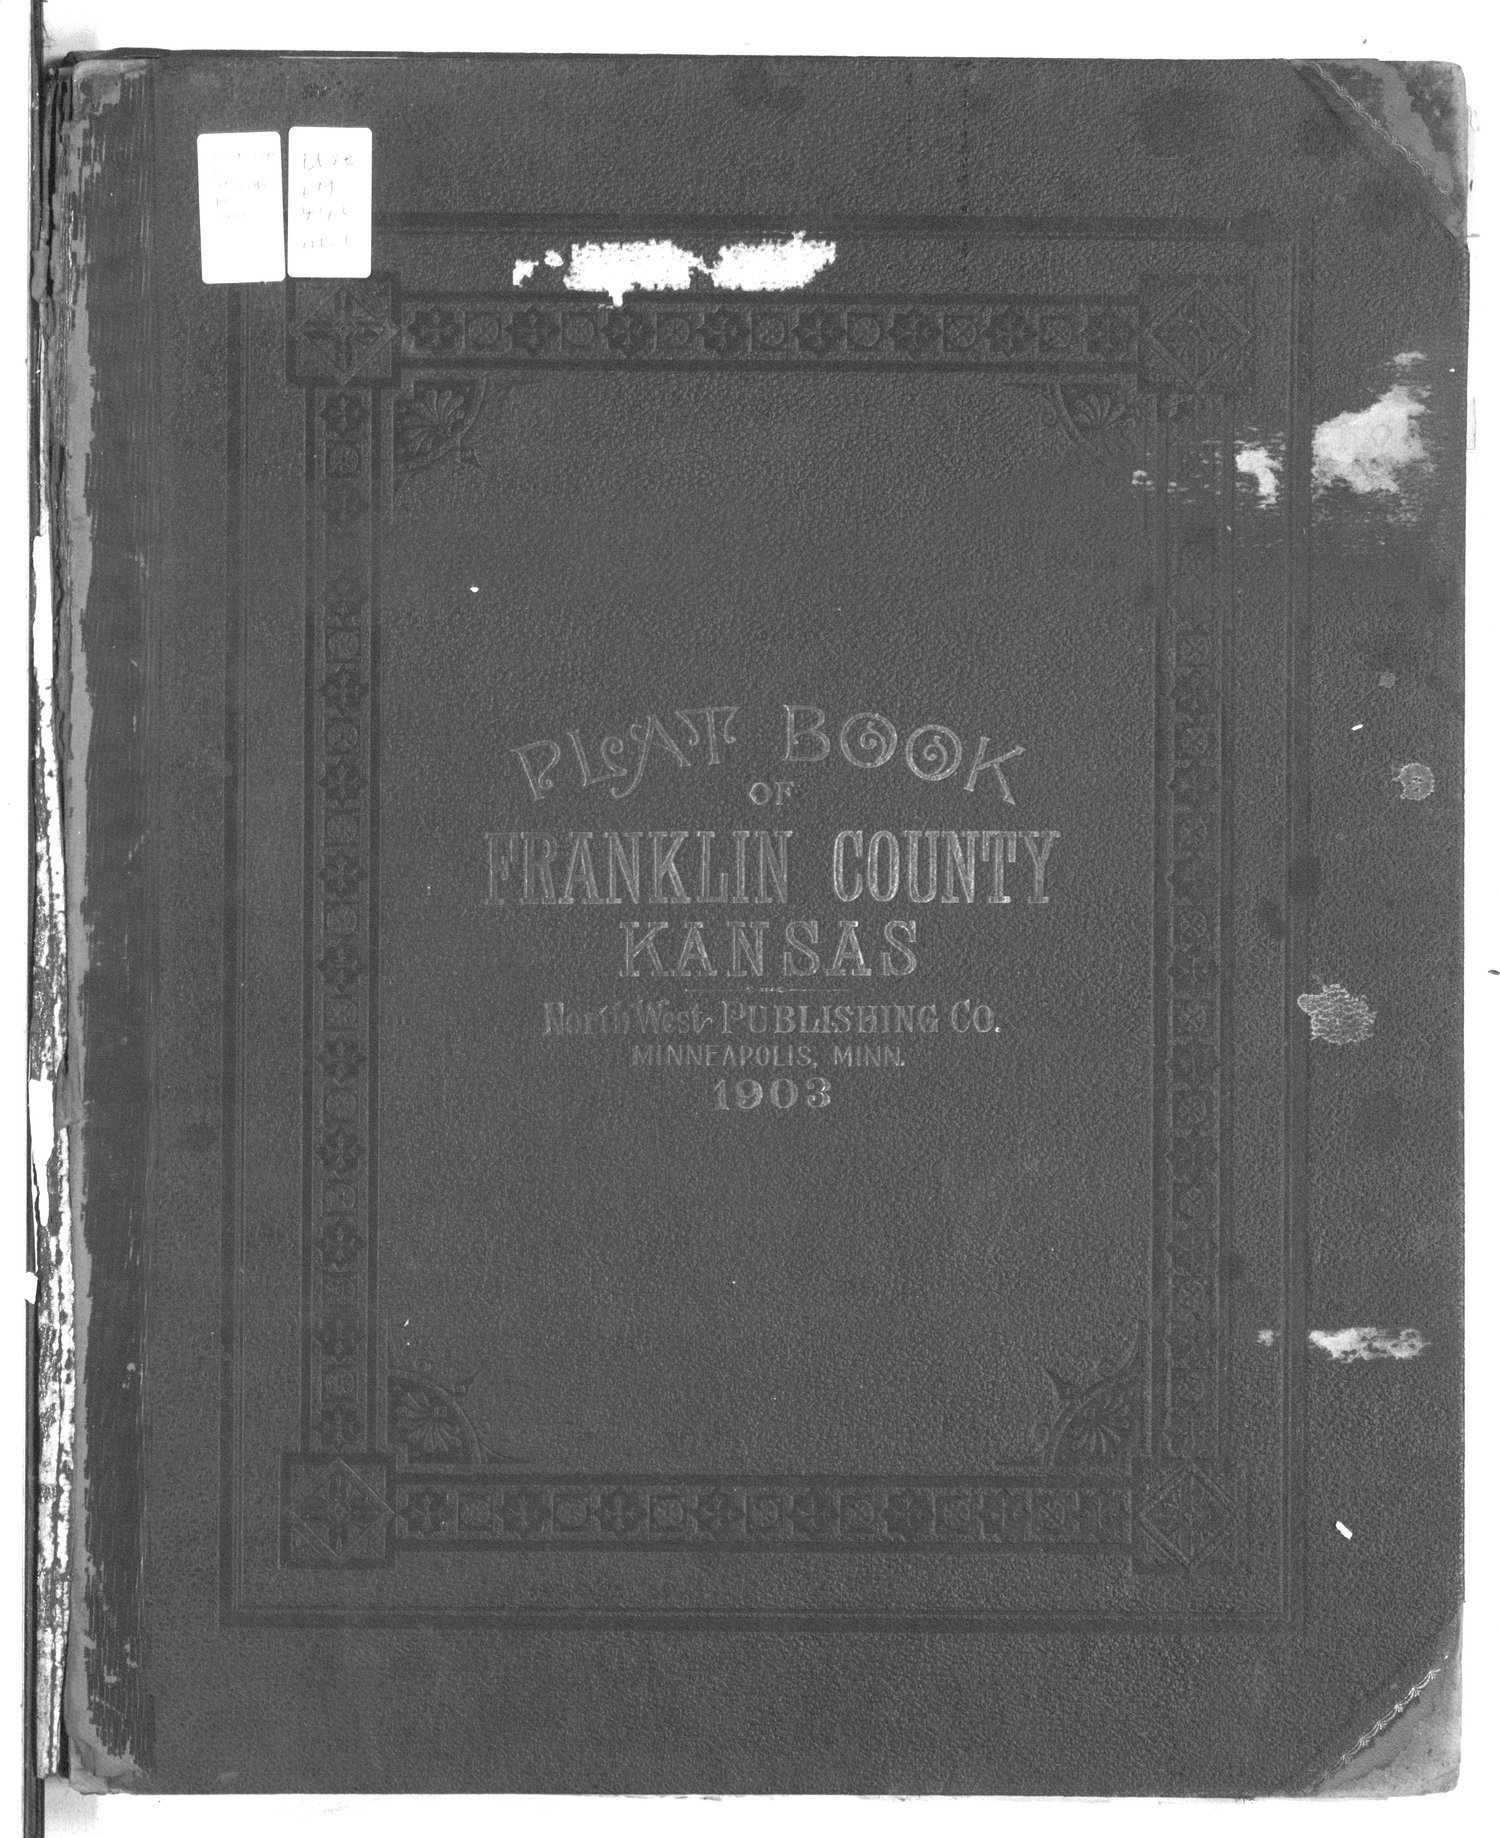 Plat book of Franklin County, Kansas - Front Cover